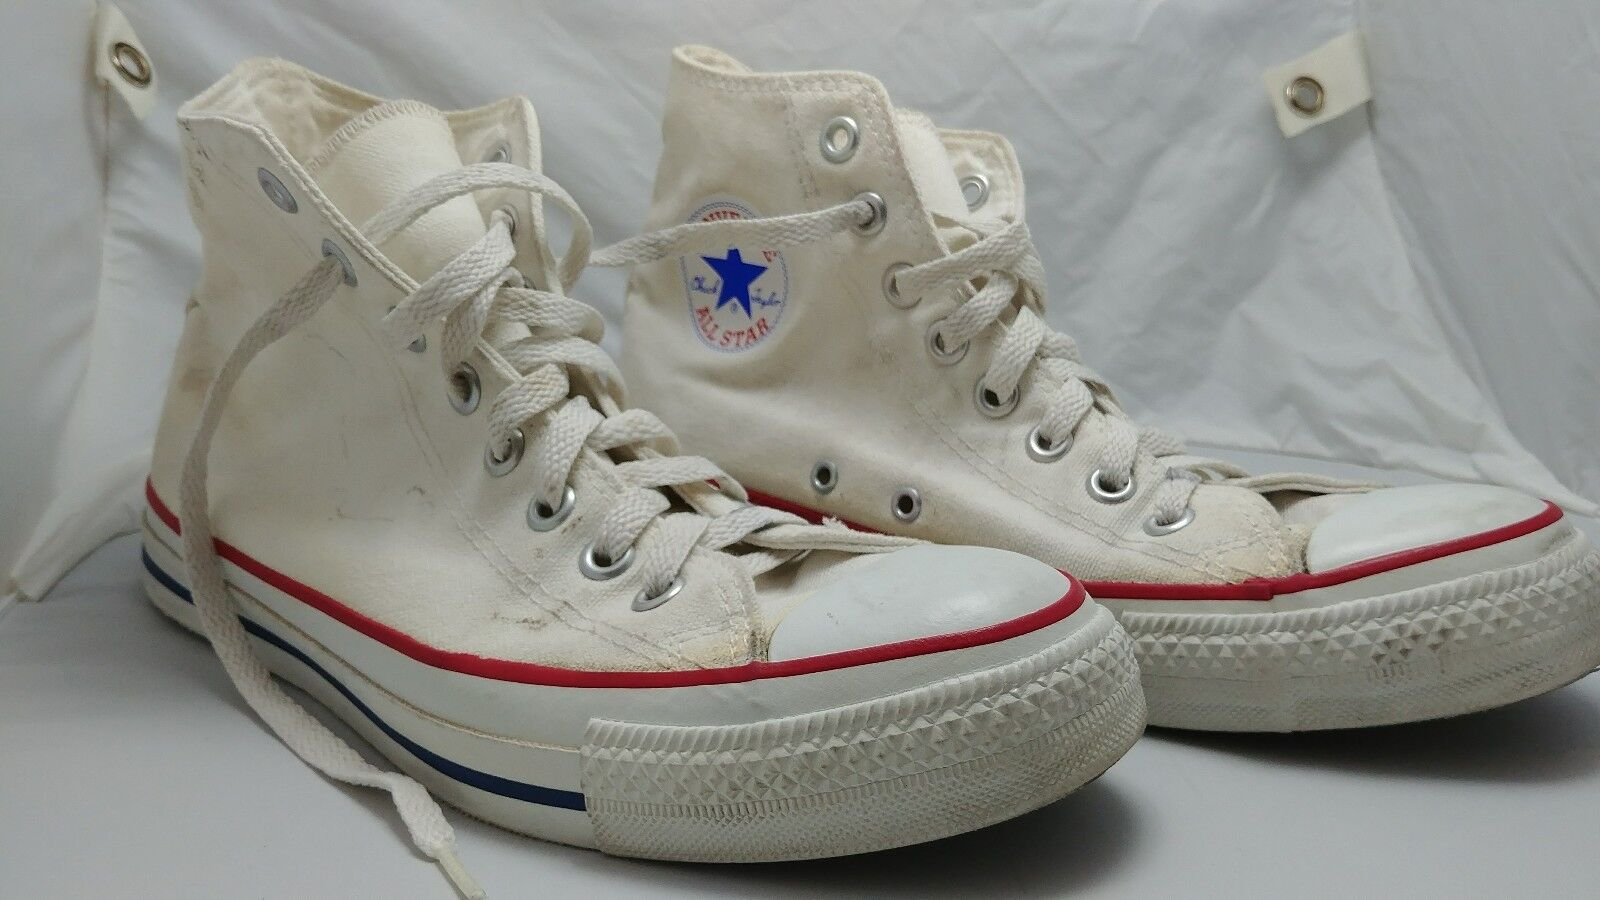 converse all star chuck taylor made in usa